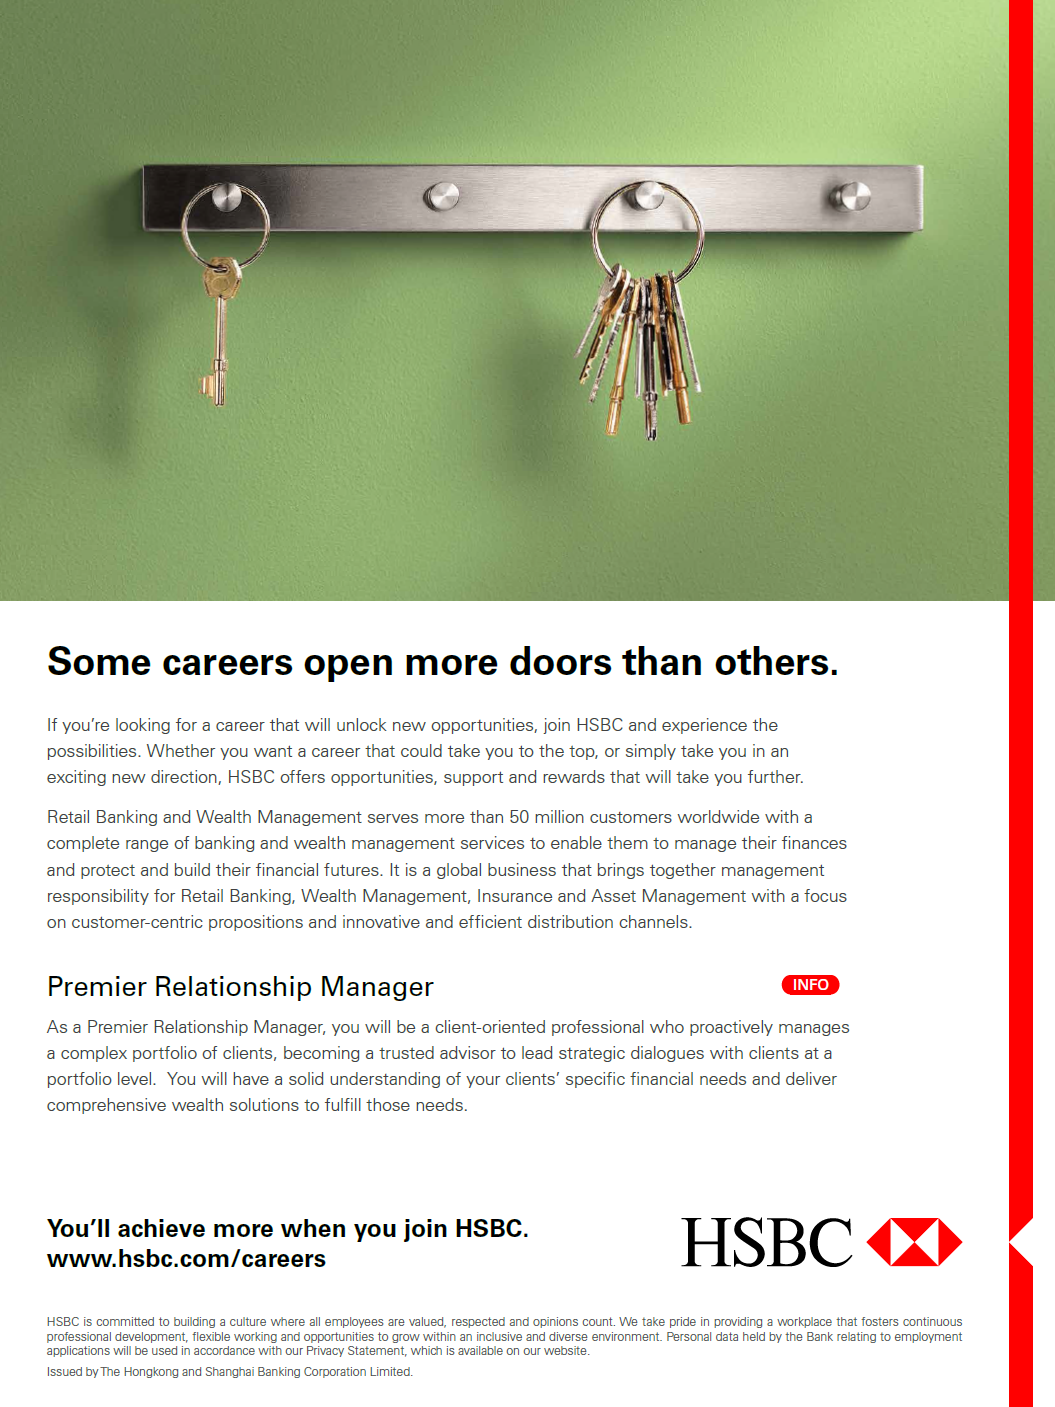 Premier Relationship Manager offered by HSBC